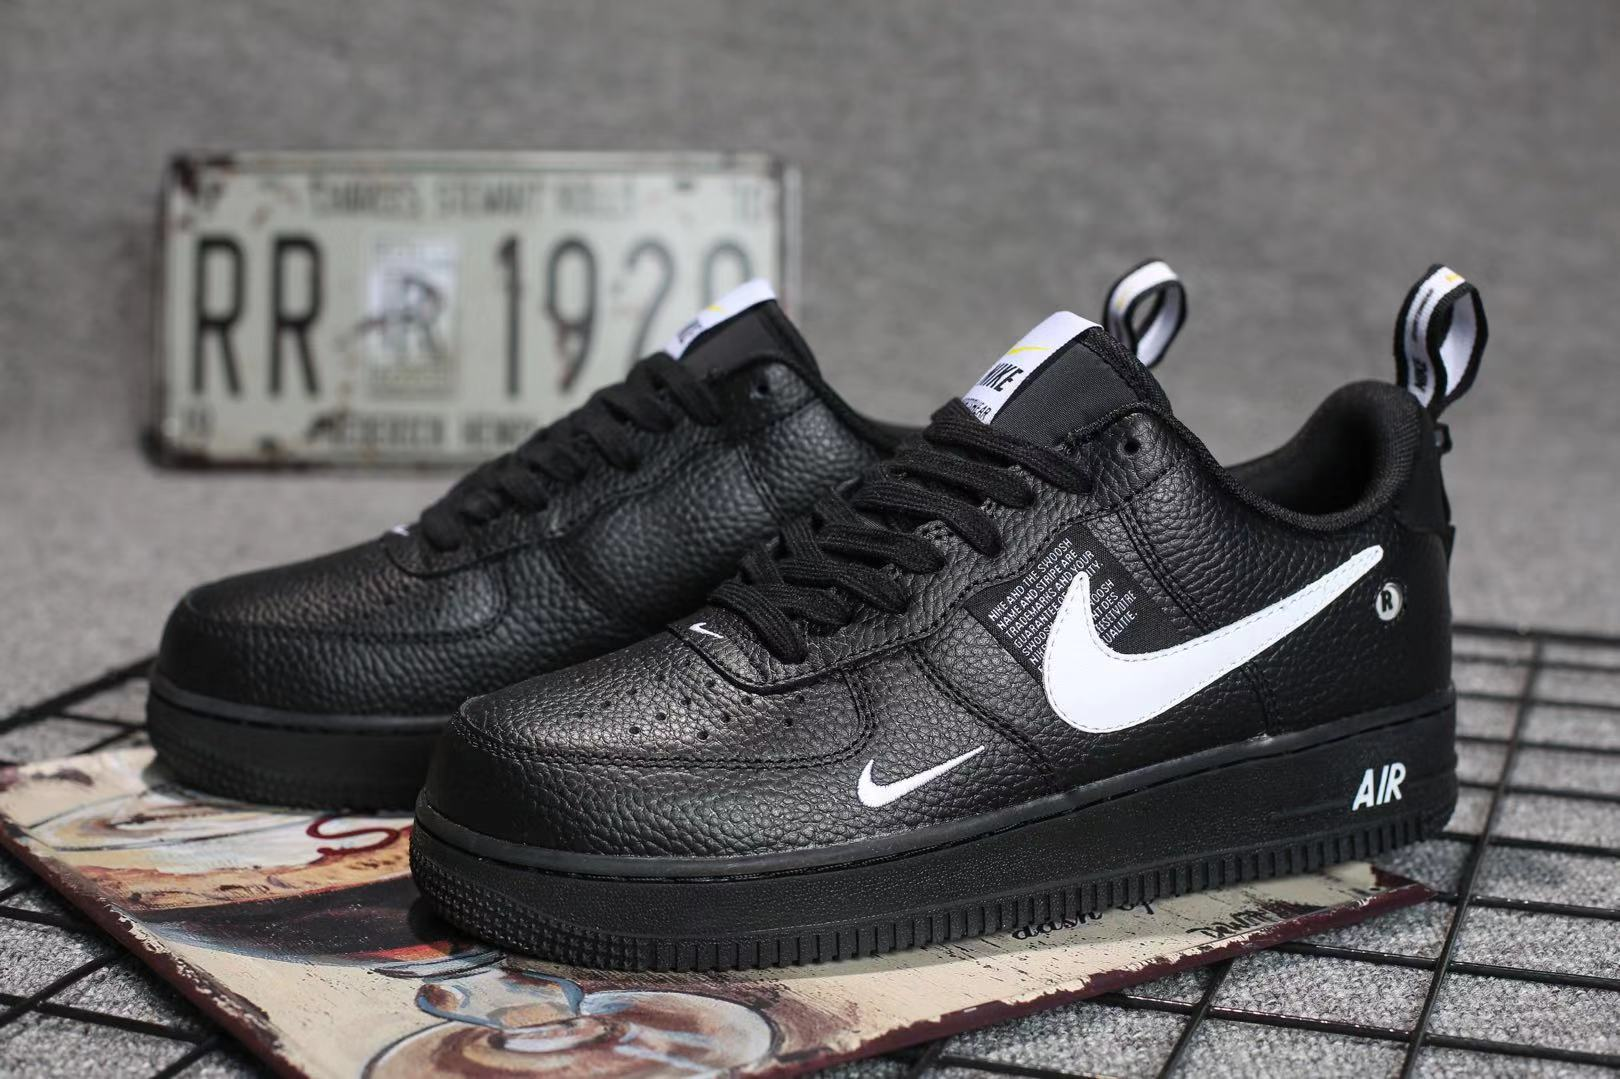 2019 Nike Air Force 1 '07 LV8 Utility Black White Shoes For Women